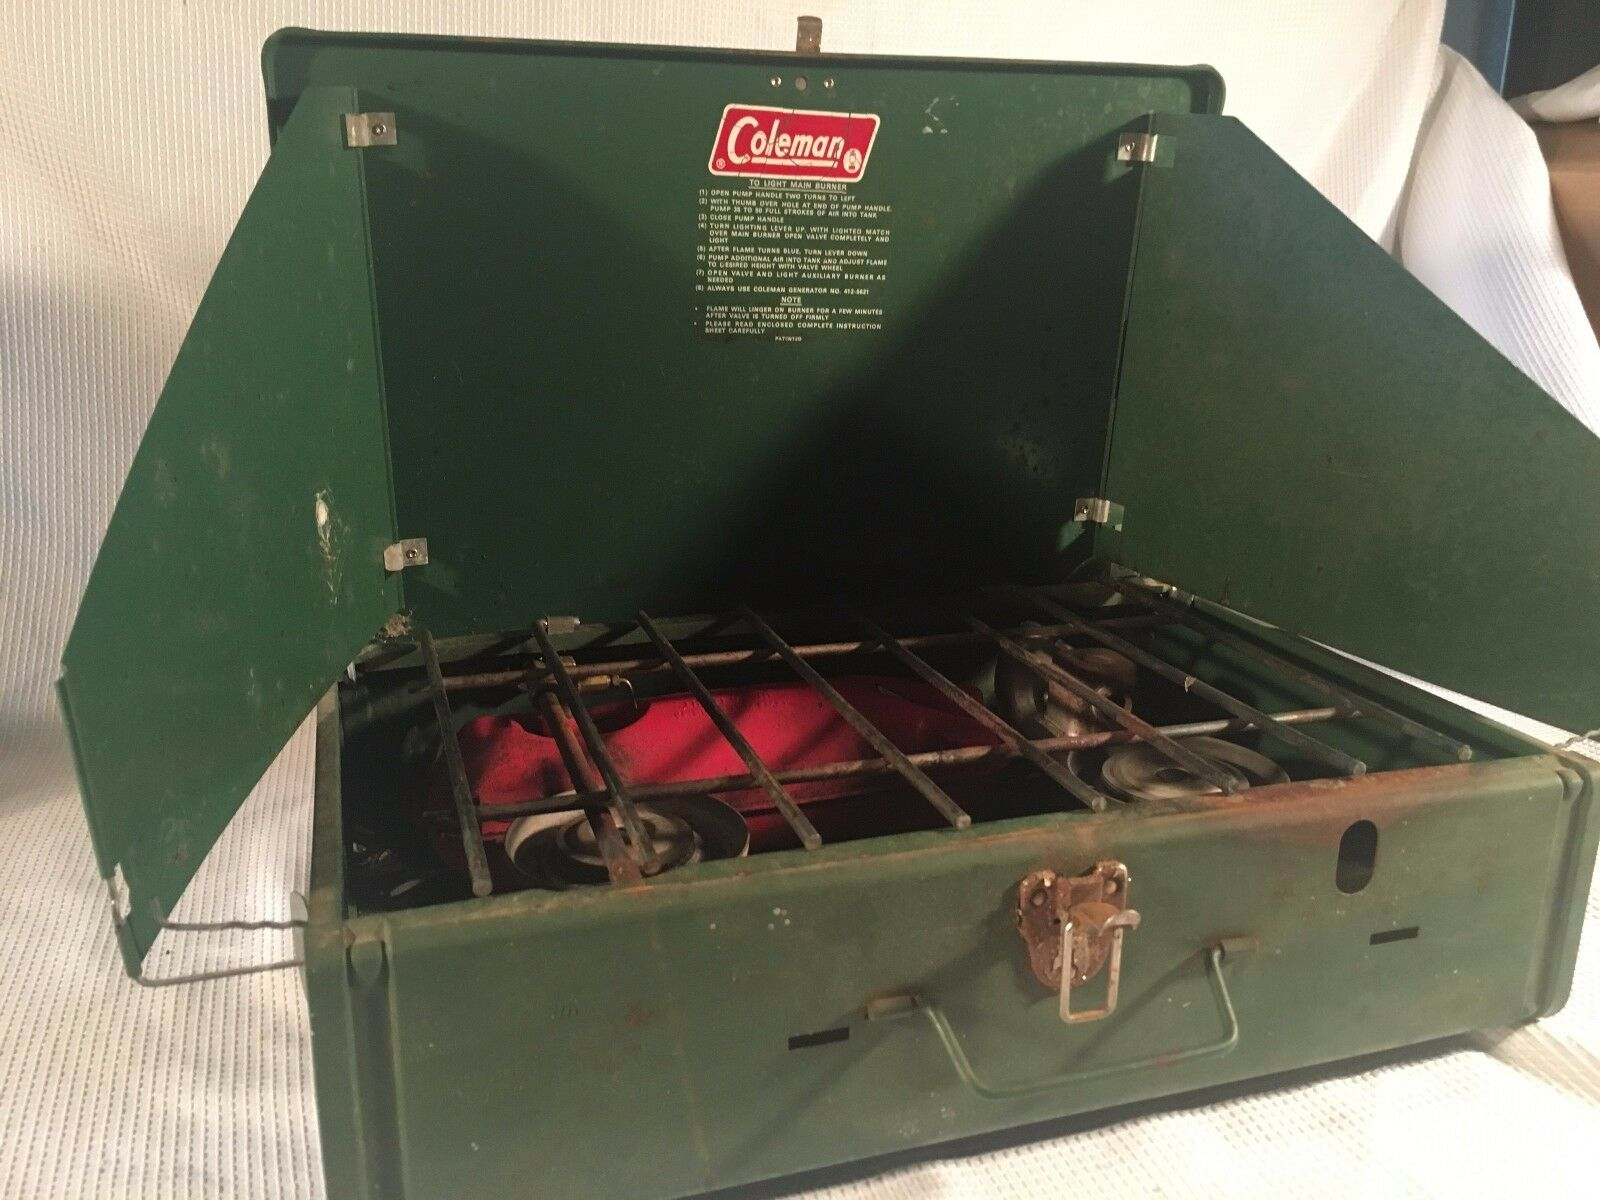 Vintage Coleman 425 E 2-Burner Camp Stove cook  food coffee hunt fish picnic bean  world famous sale online